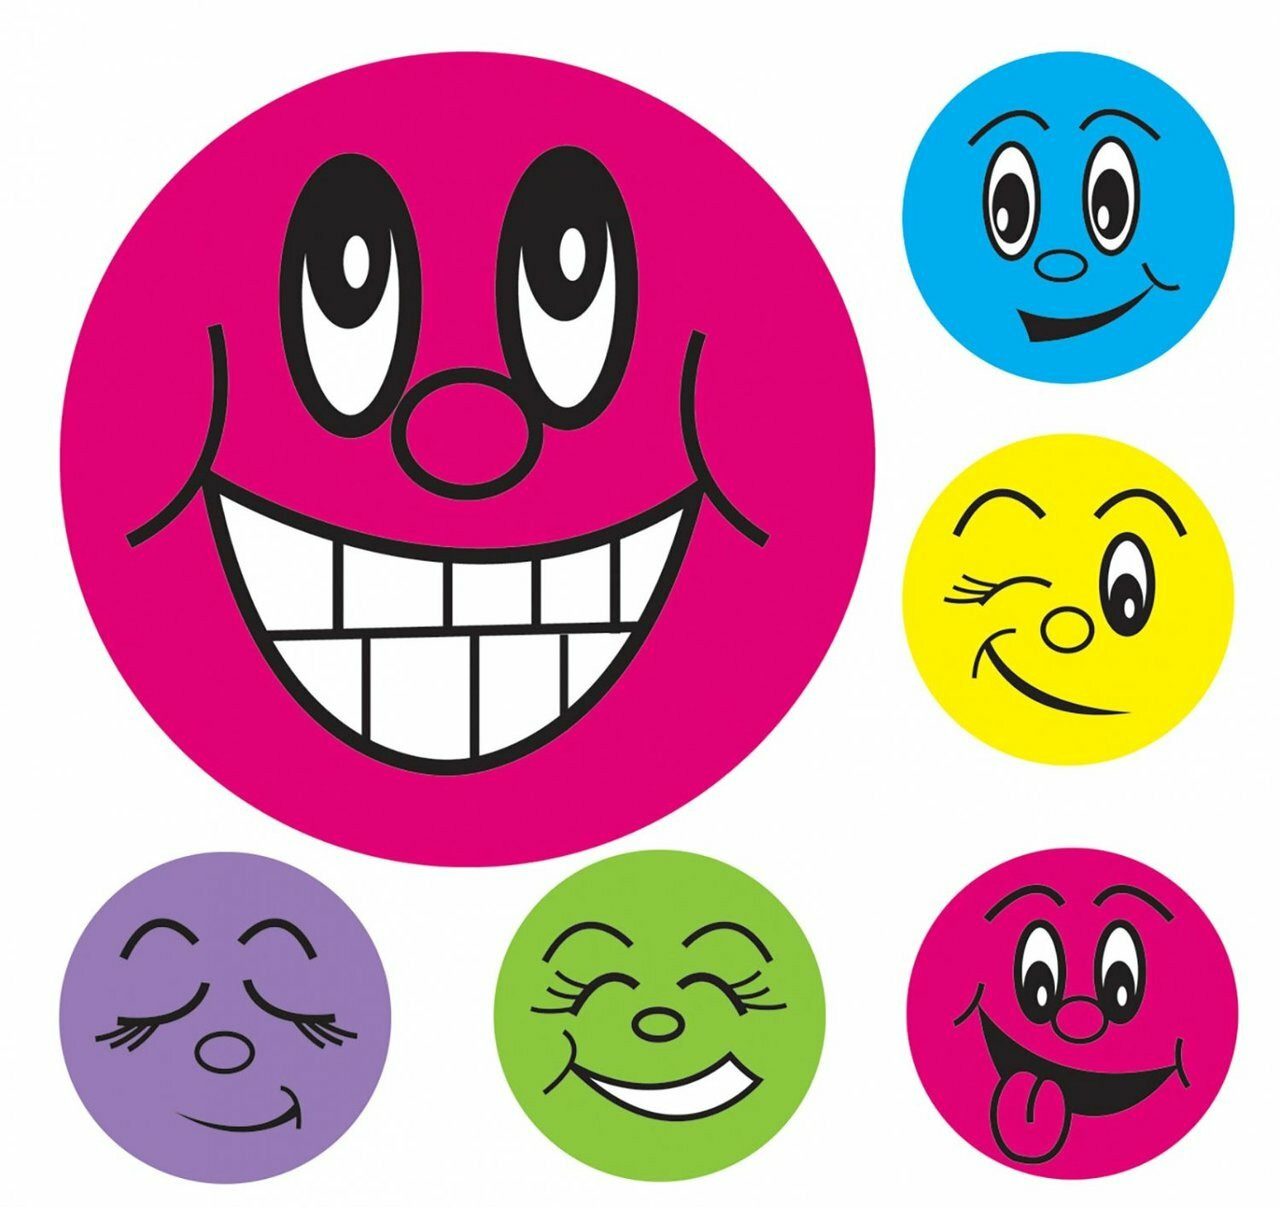 10 Sheets Colourful Happy Round Smile Face Stickers School Reward Merit DIY CA